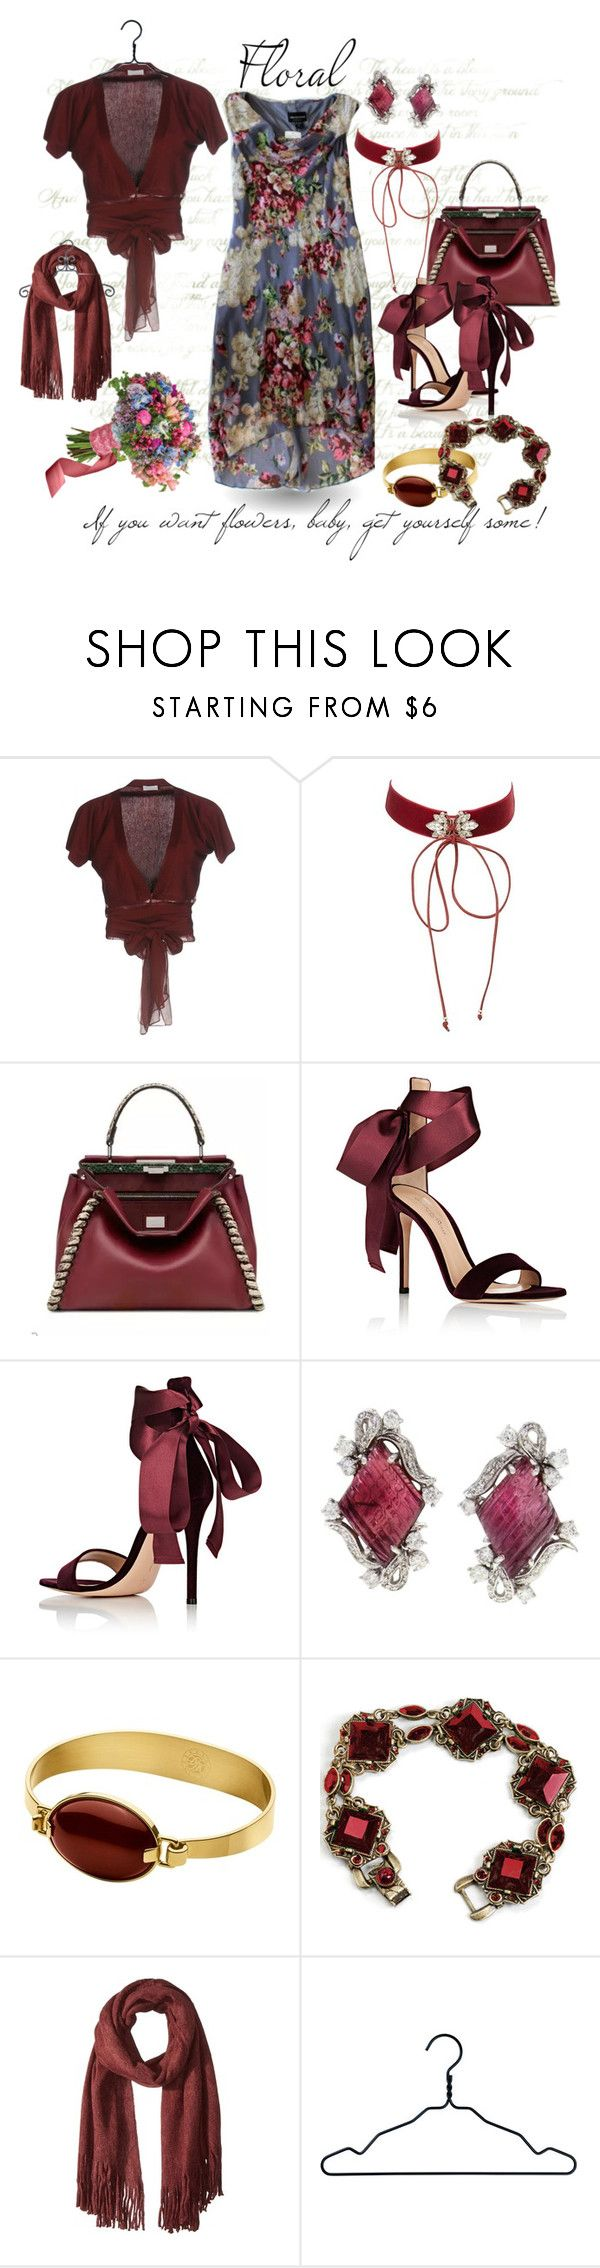 """Get Yourself Some Flowers"" by gypsy-jo ❤ liked on Polyvore featuring Brunello Cucinelli, Charlotte Russe, Gianvito Rossi, Dyrberg/Kern, Steve Madden and Nomess"